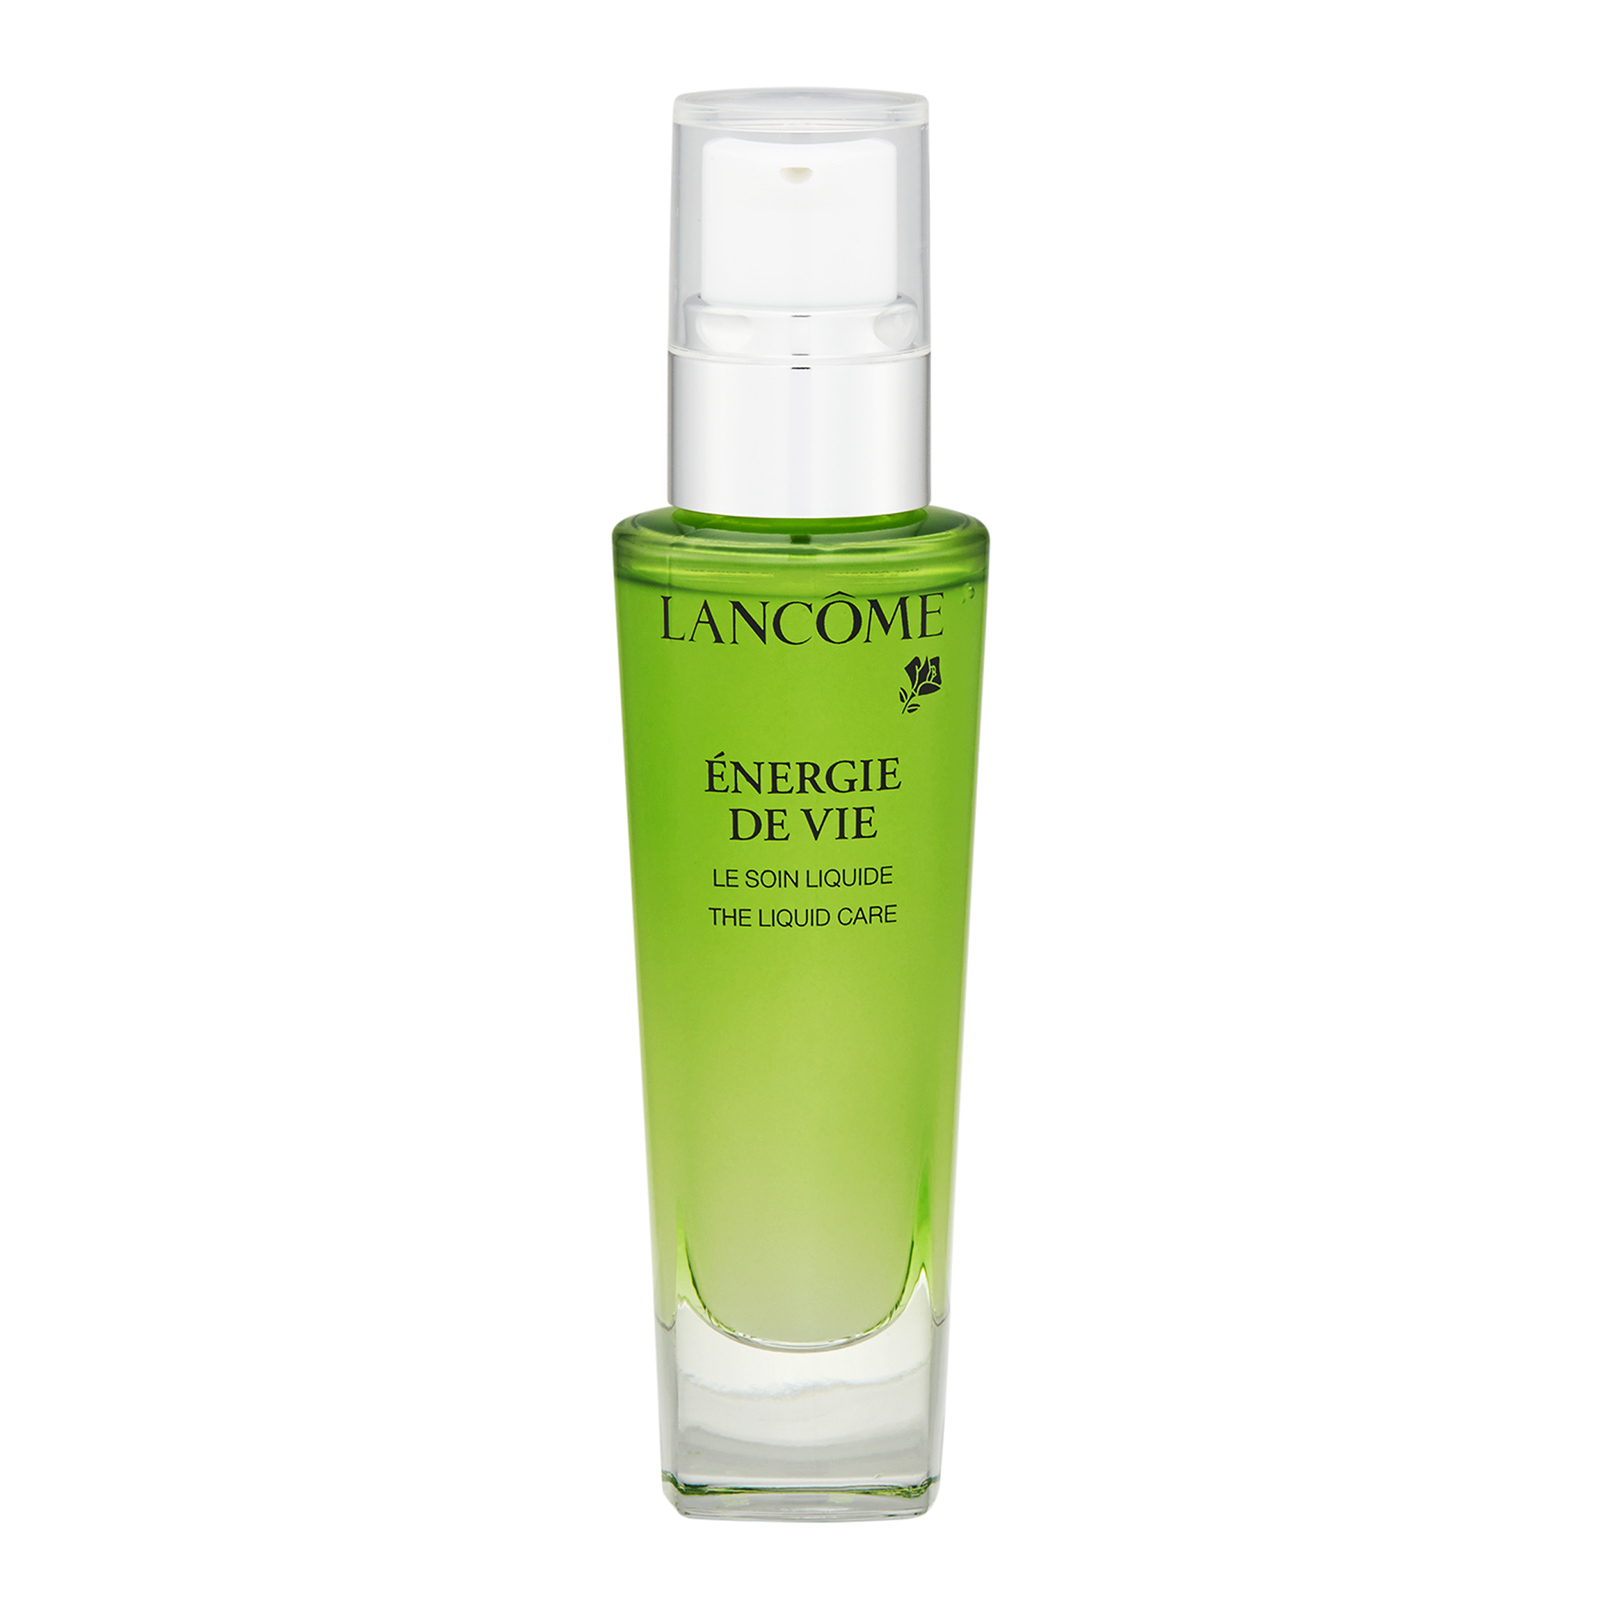 LANCÔME Energie De Vie  The Smoothing & Glow Boosting Liquid Care 1oz, 30ml from Cosme-De.com